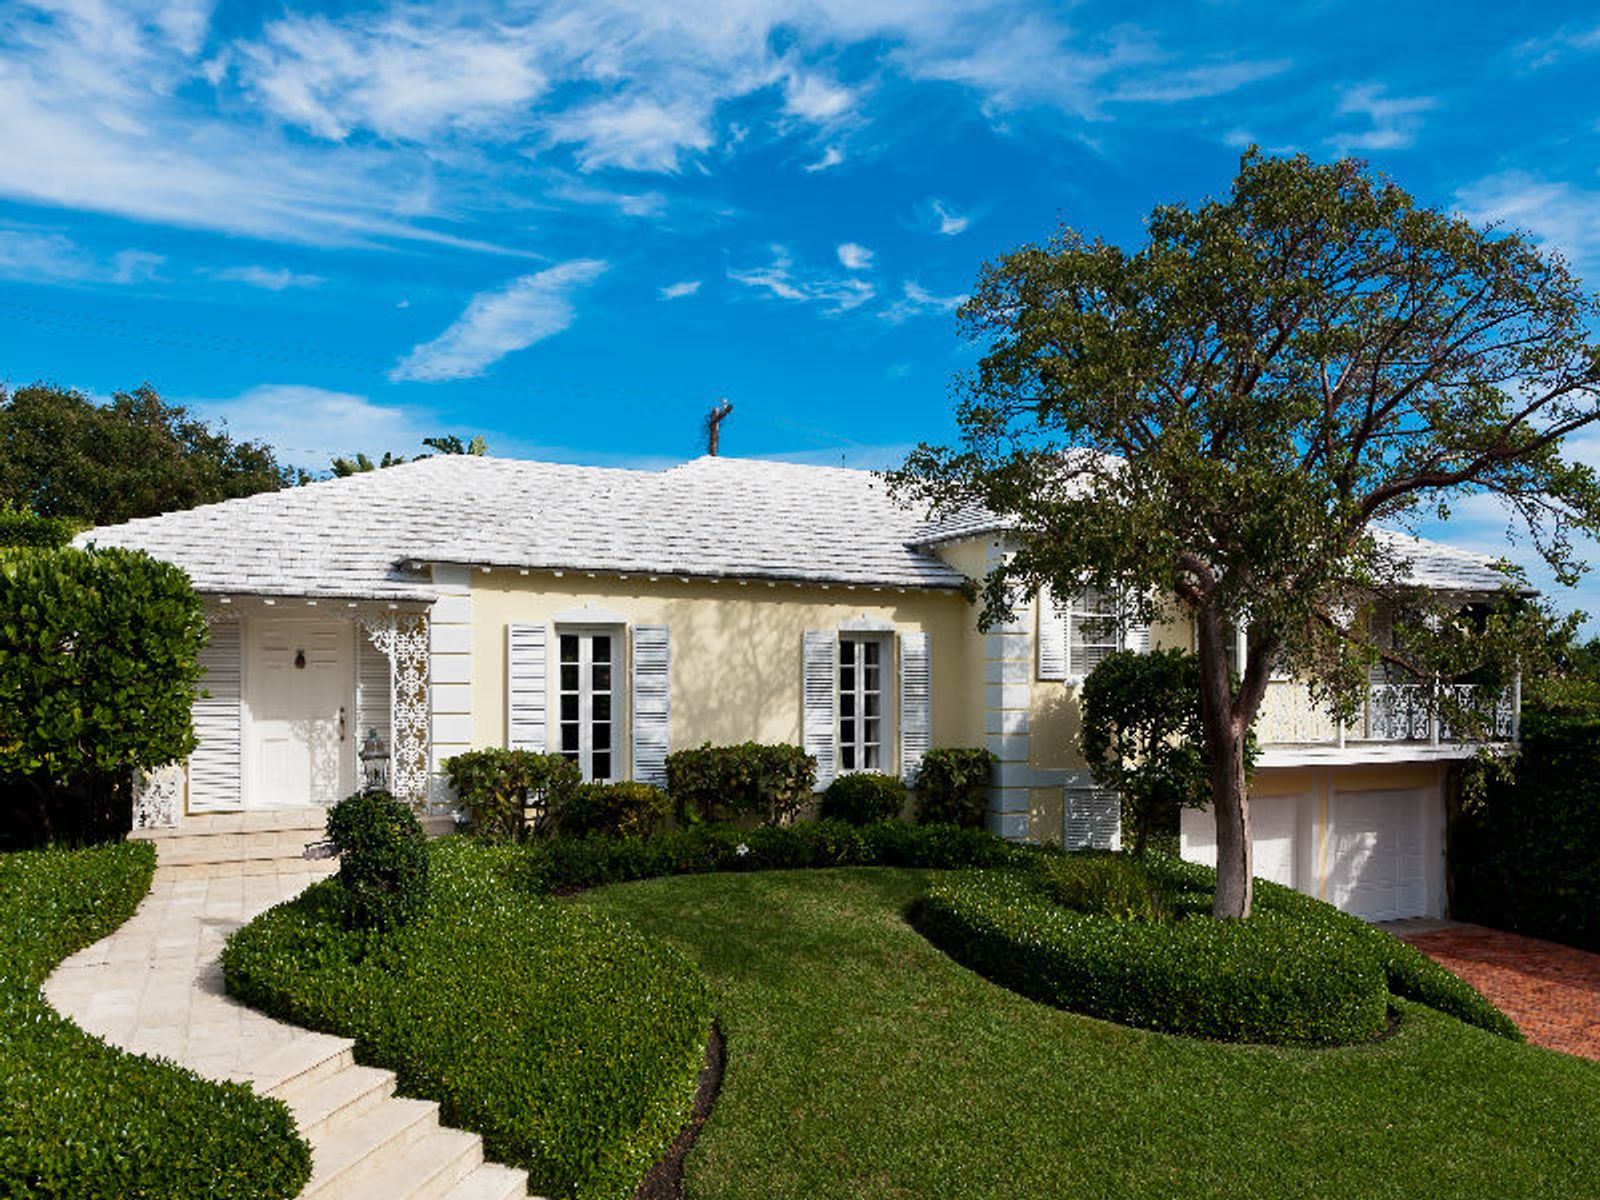 Charming Bahama Lane, Palm Beach FL Single Family Home - Palm Beach Real Estate